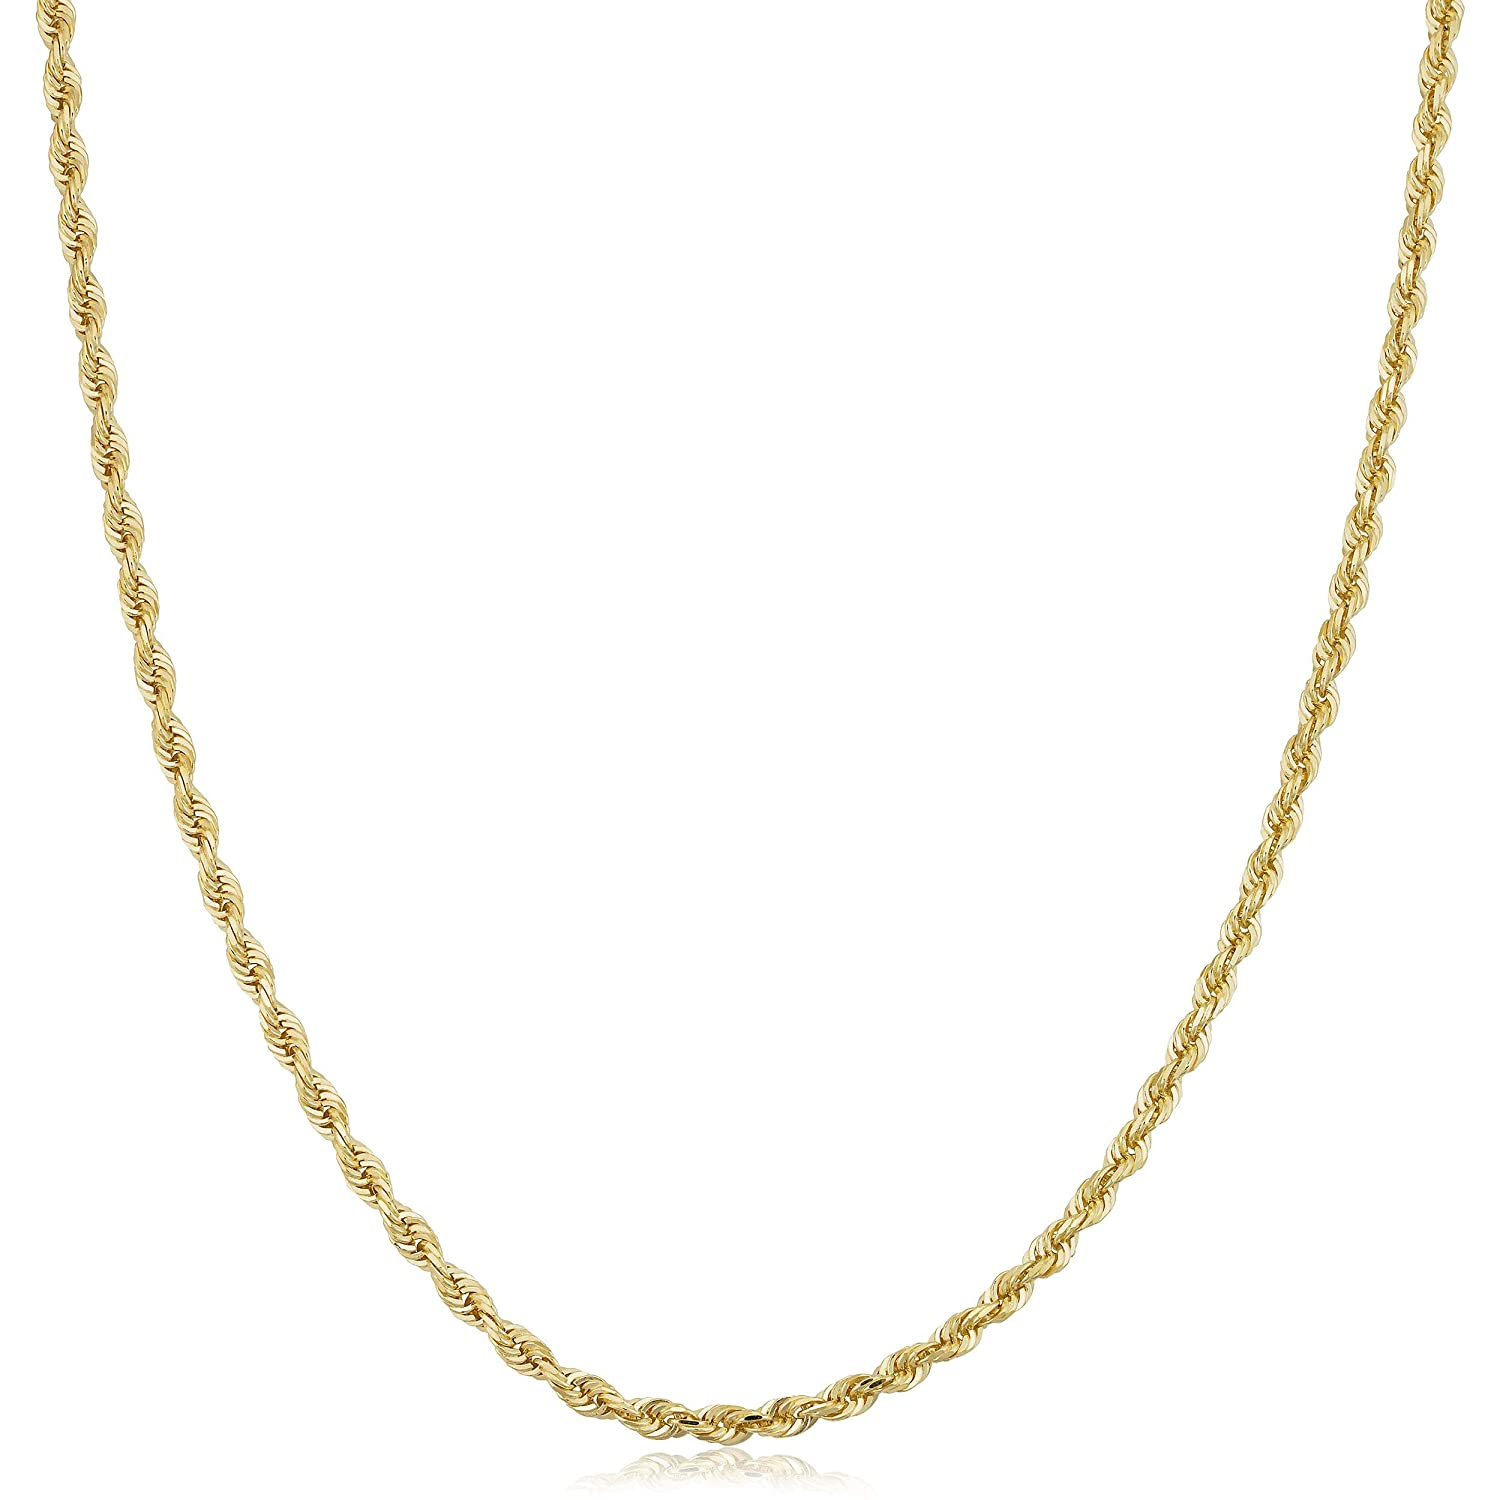 Kooljewelry Mens or Womens 10k Yellow Gold 2.6 mm Rope Chain Necklace